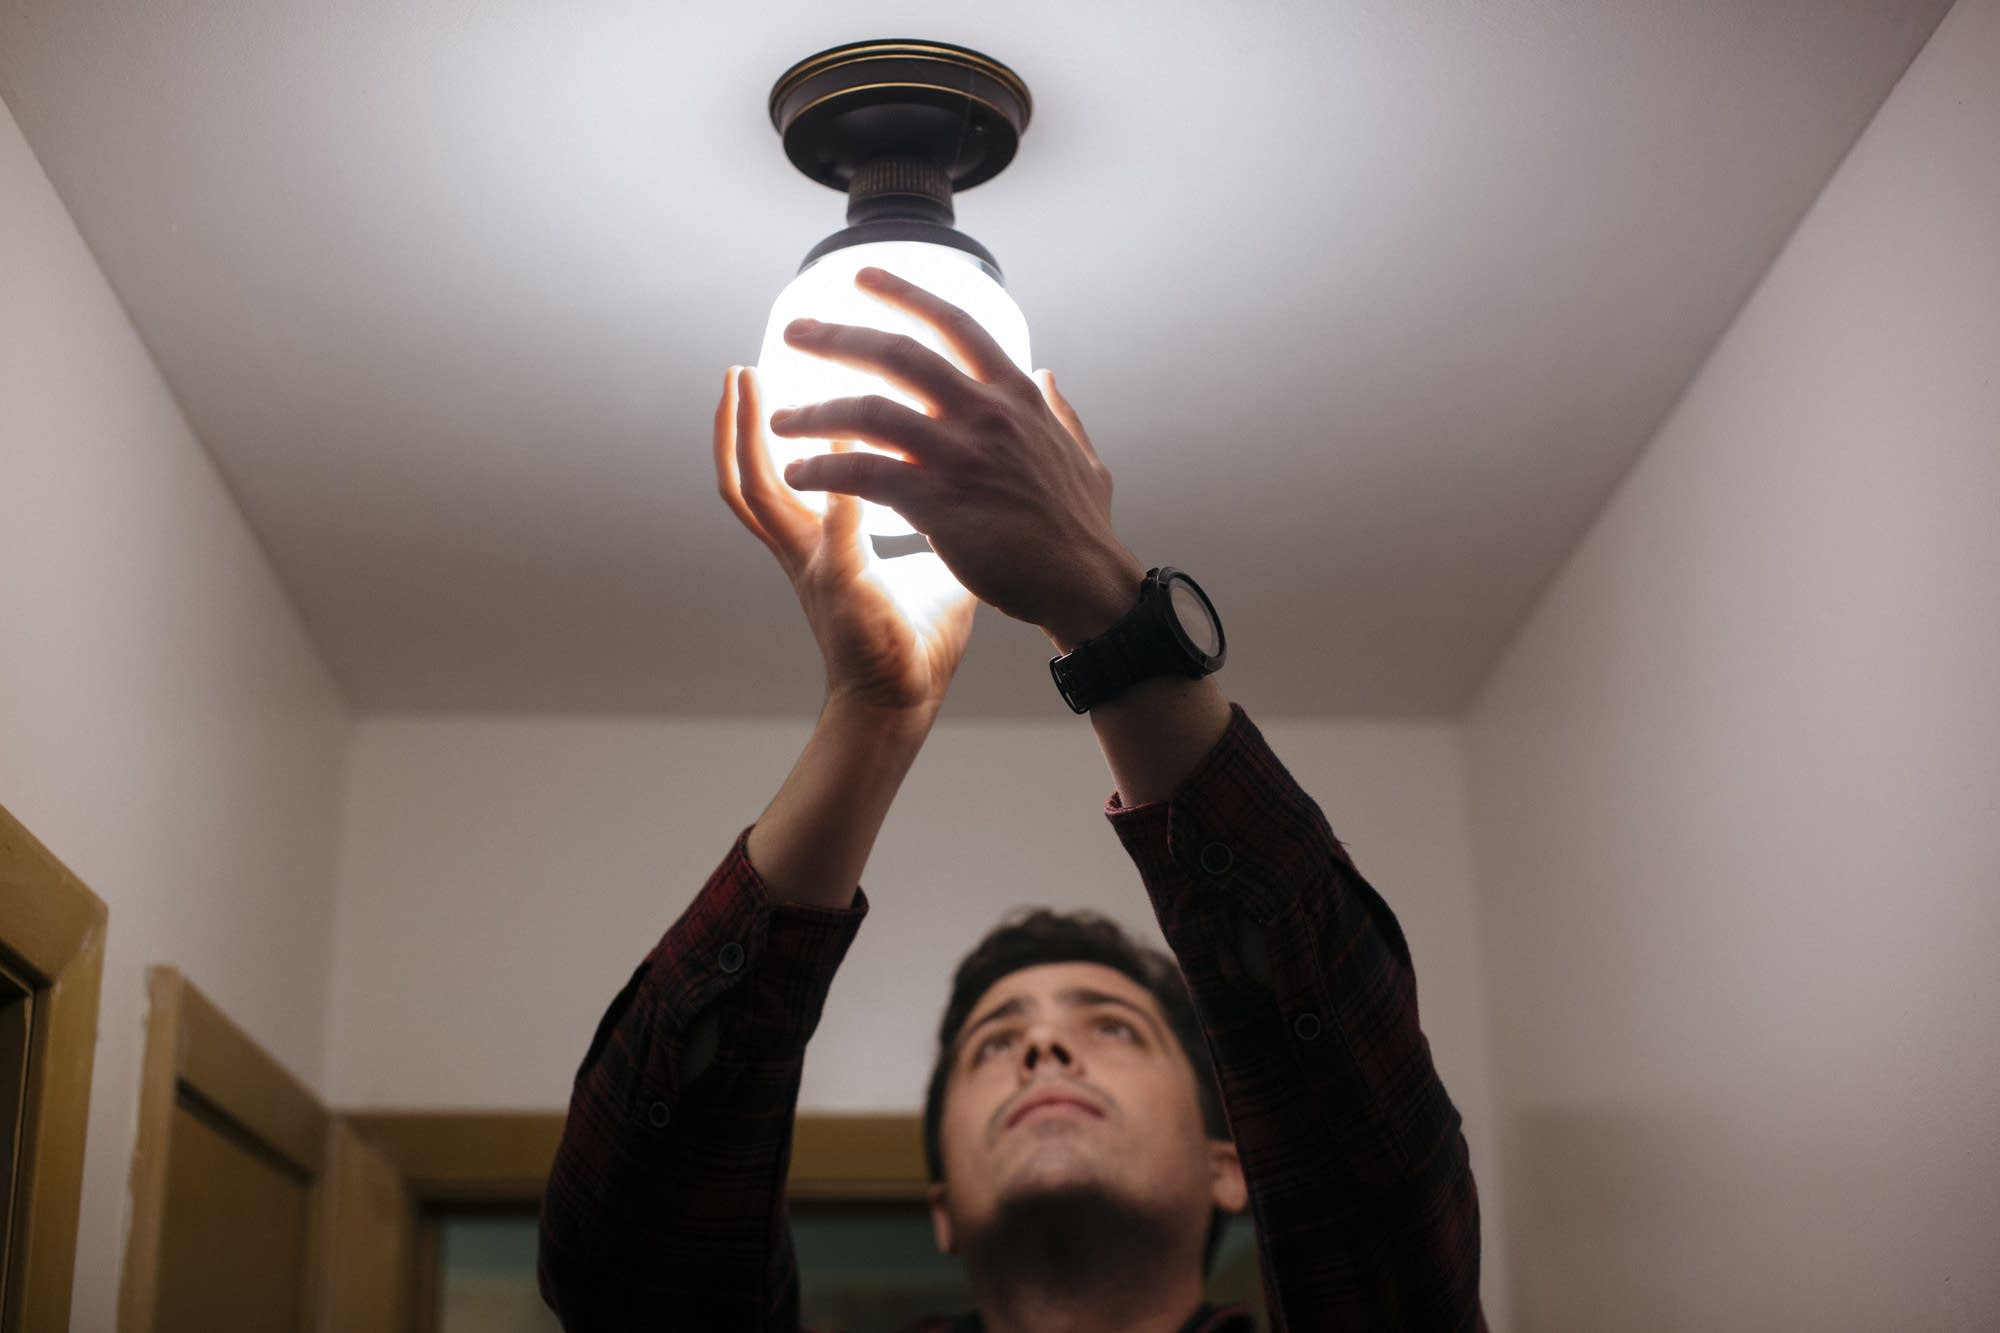 Andy Nail installs a high efficiency lightbulb.